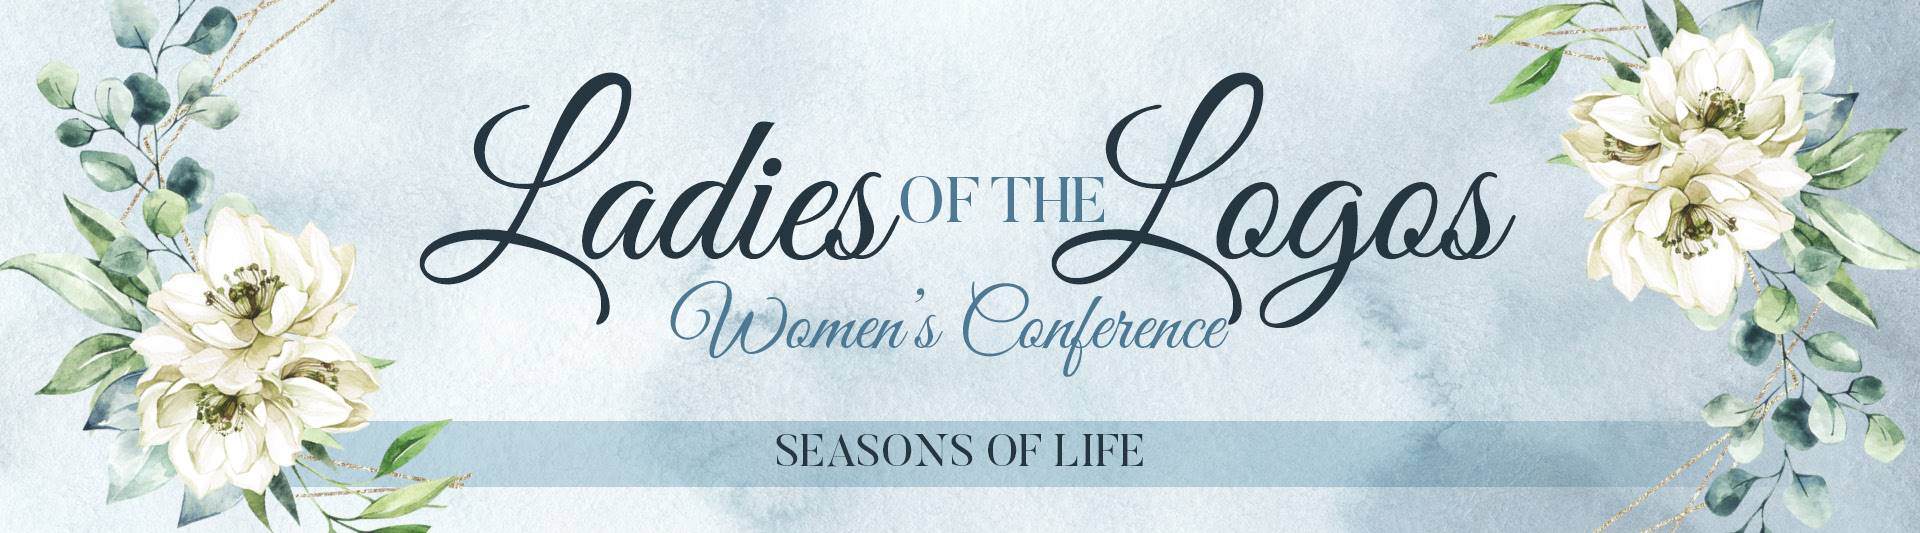 The Ladies of the Logos Women's Conference